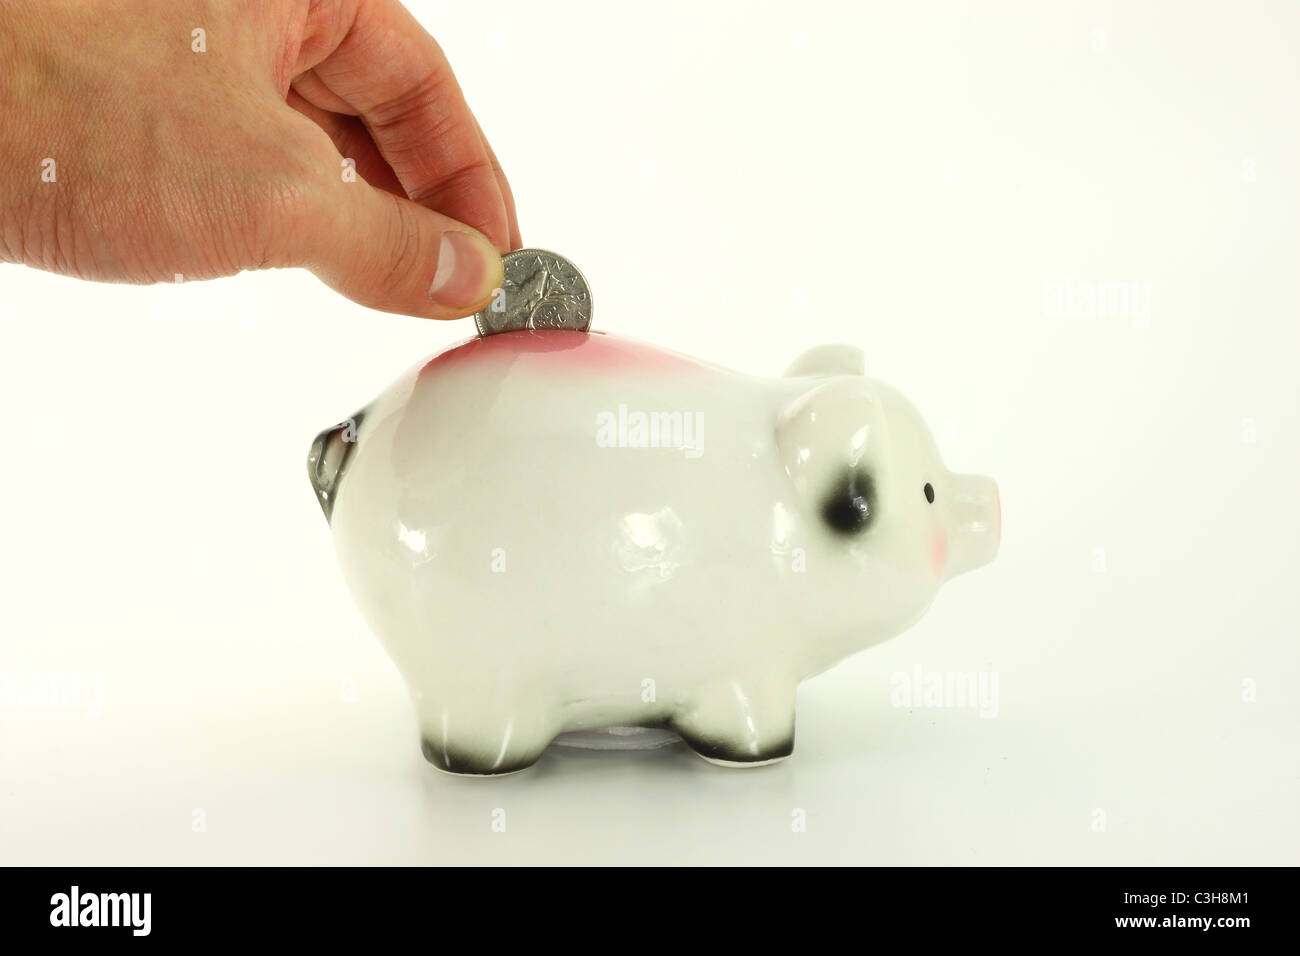 Close up of hand depositing a quarter in to a cute piggy bank isolated on a white background - Stock Image